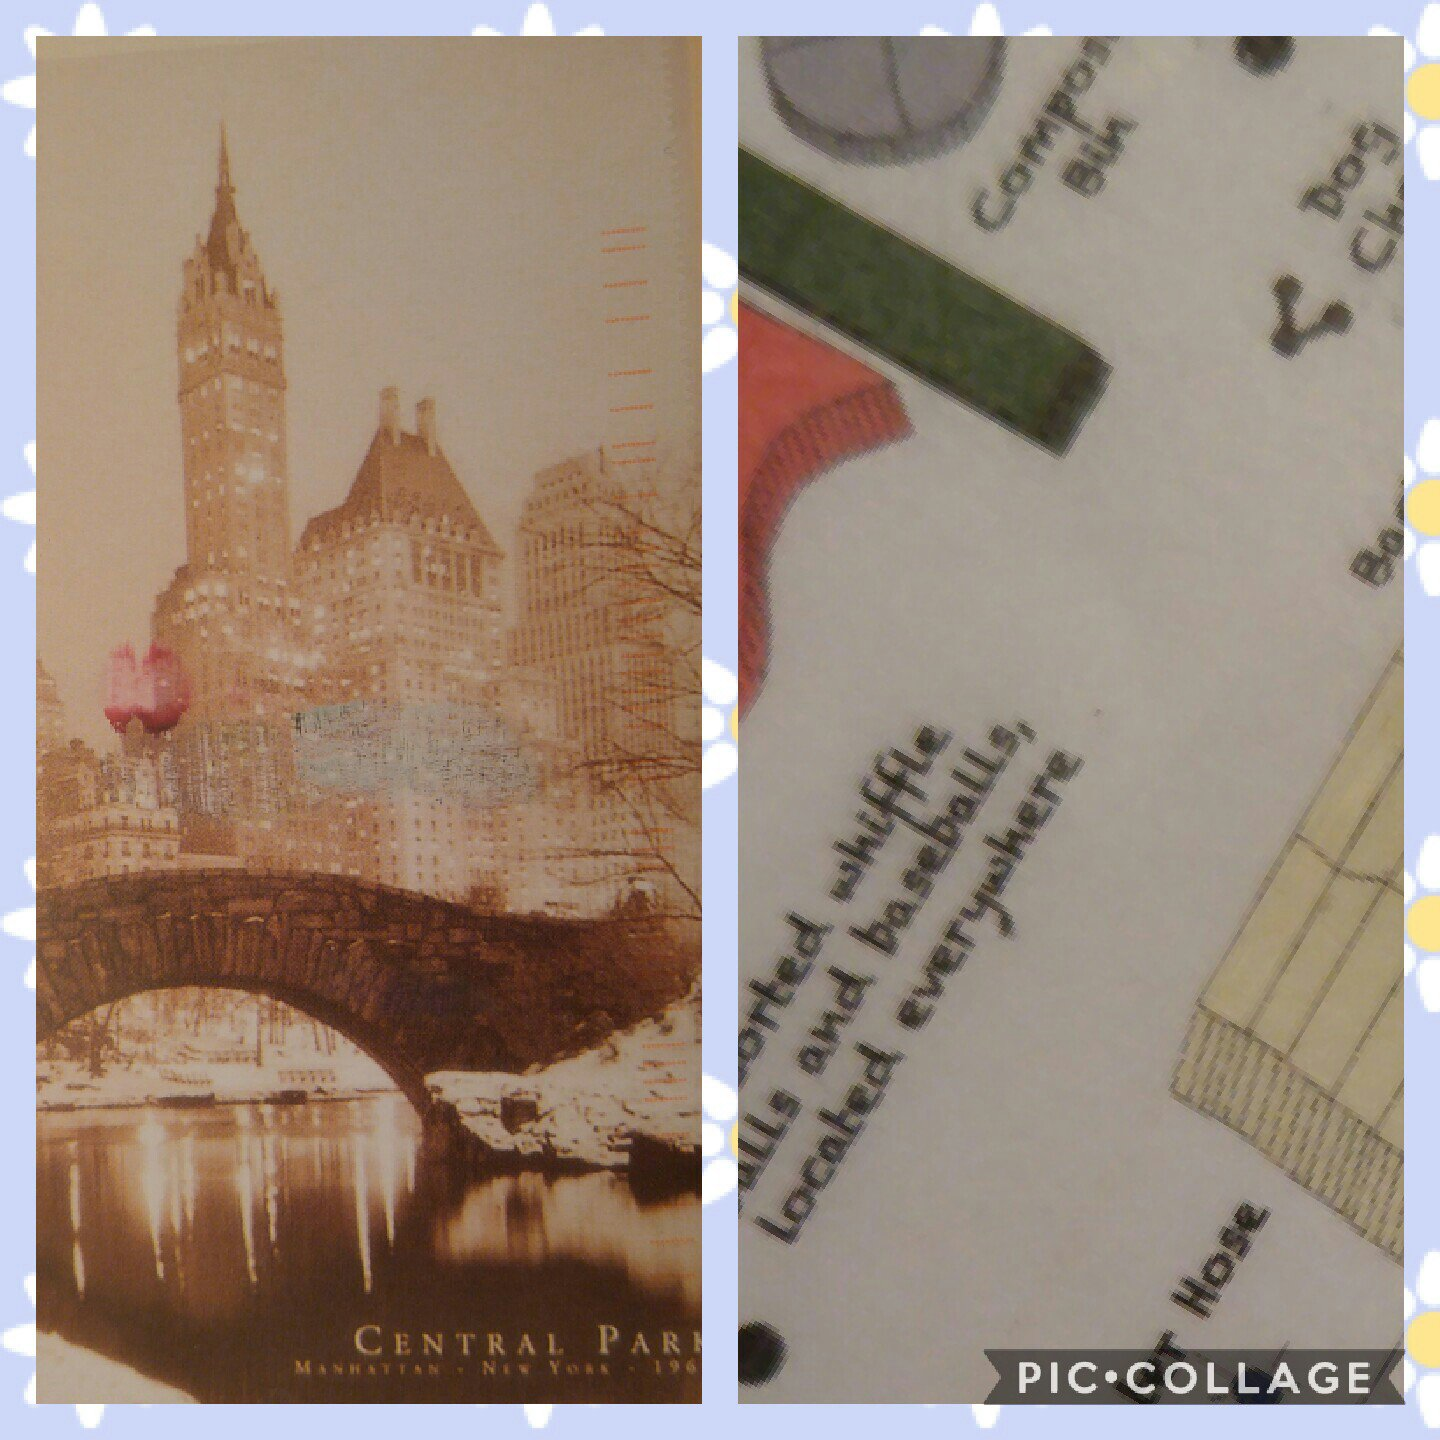 Imaginative #clmooc #map #postcard from @dogtrax. Thanks! https://t.co/rtvKVhq8Zl